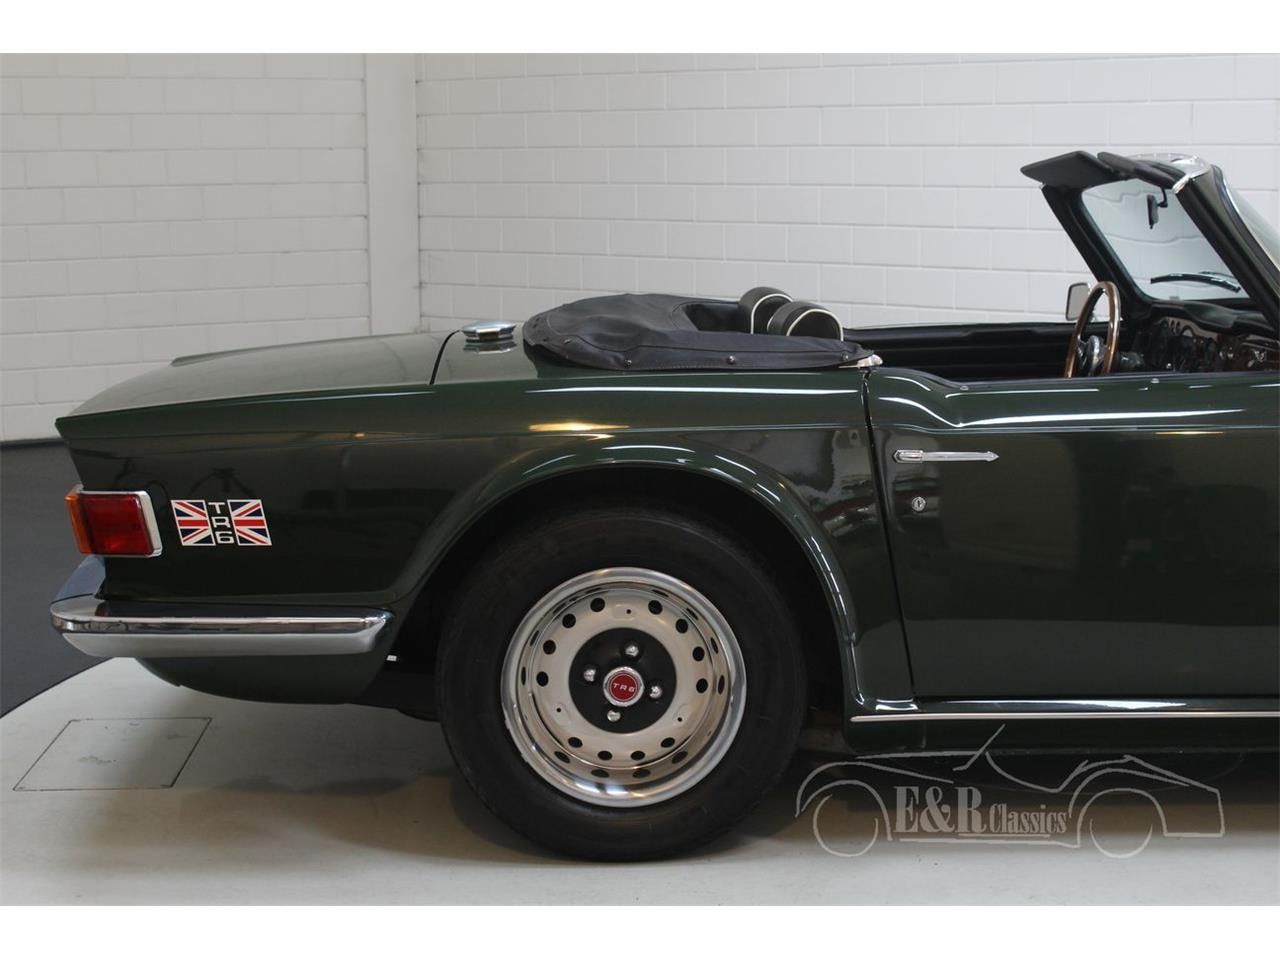 Large Picture of Classic 1969 TR6 located in Waalwijk Noord Brabant - $33,700.00 Offered by E & R Classics - PWOE